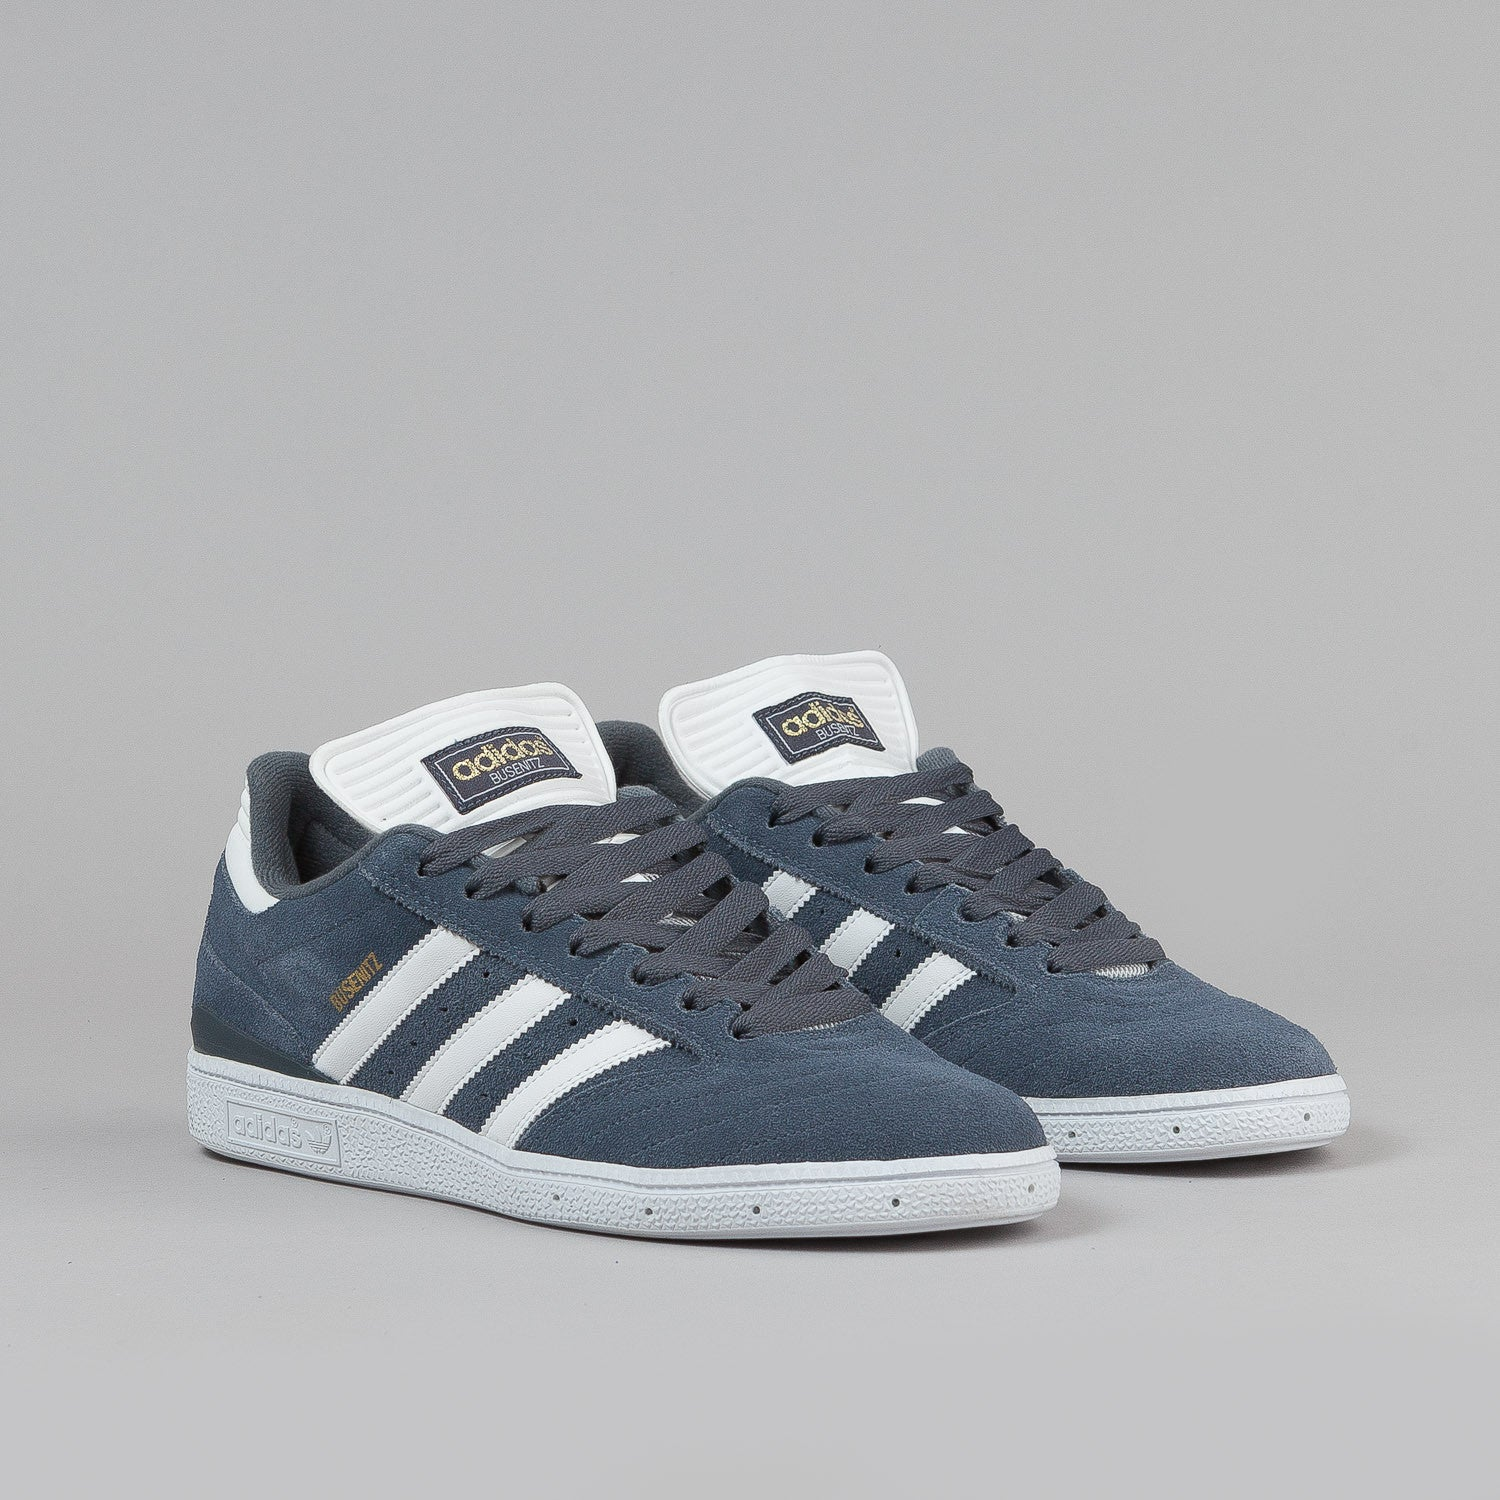 Adidas Busenitz Shoes - Dark Onyx / White / Metallic Gold